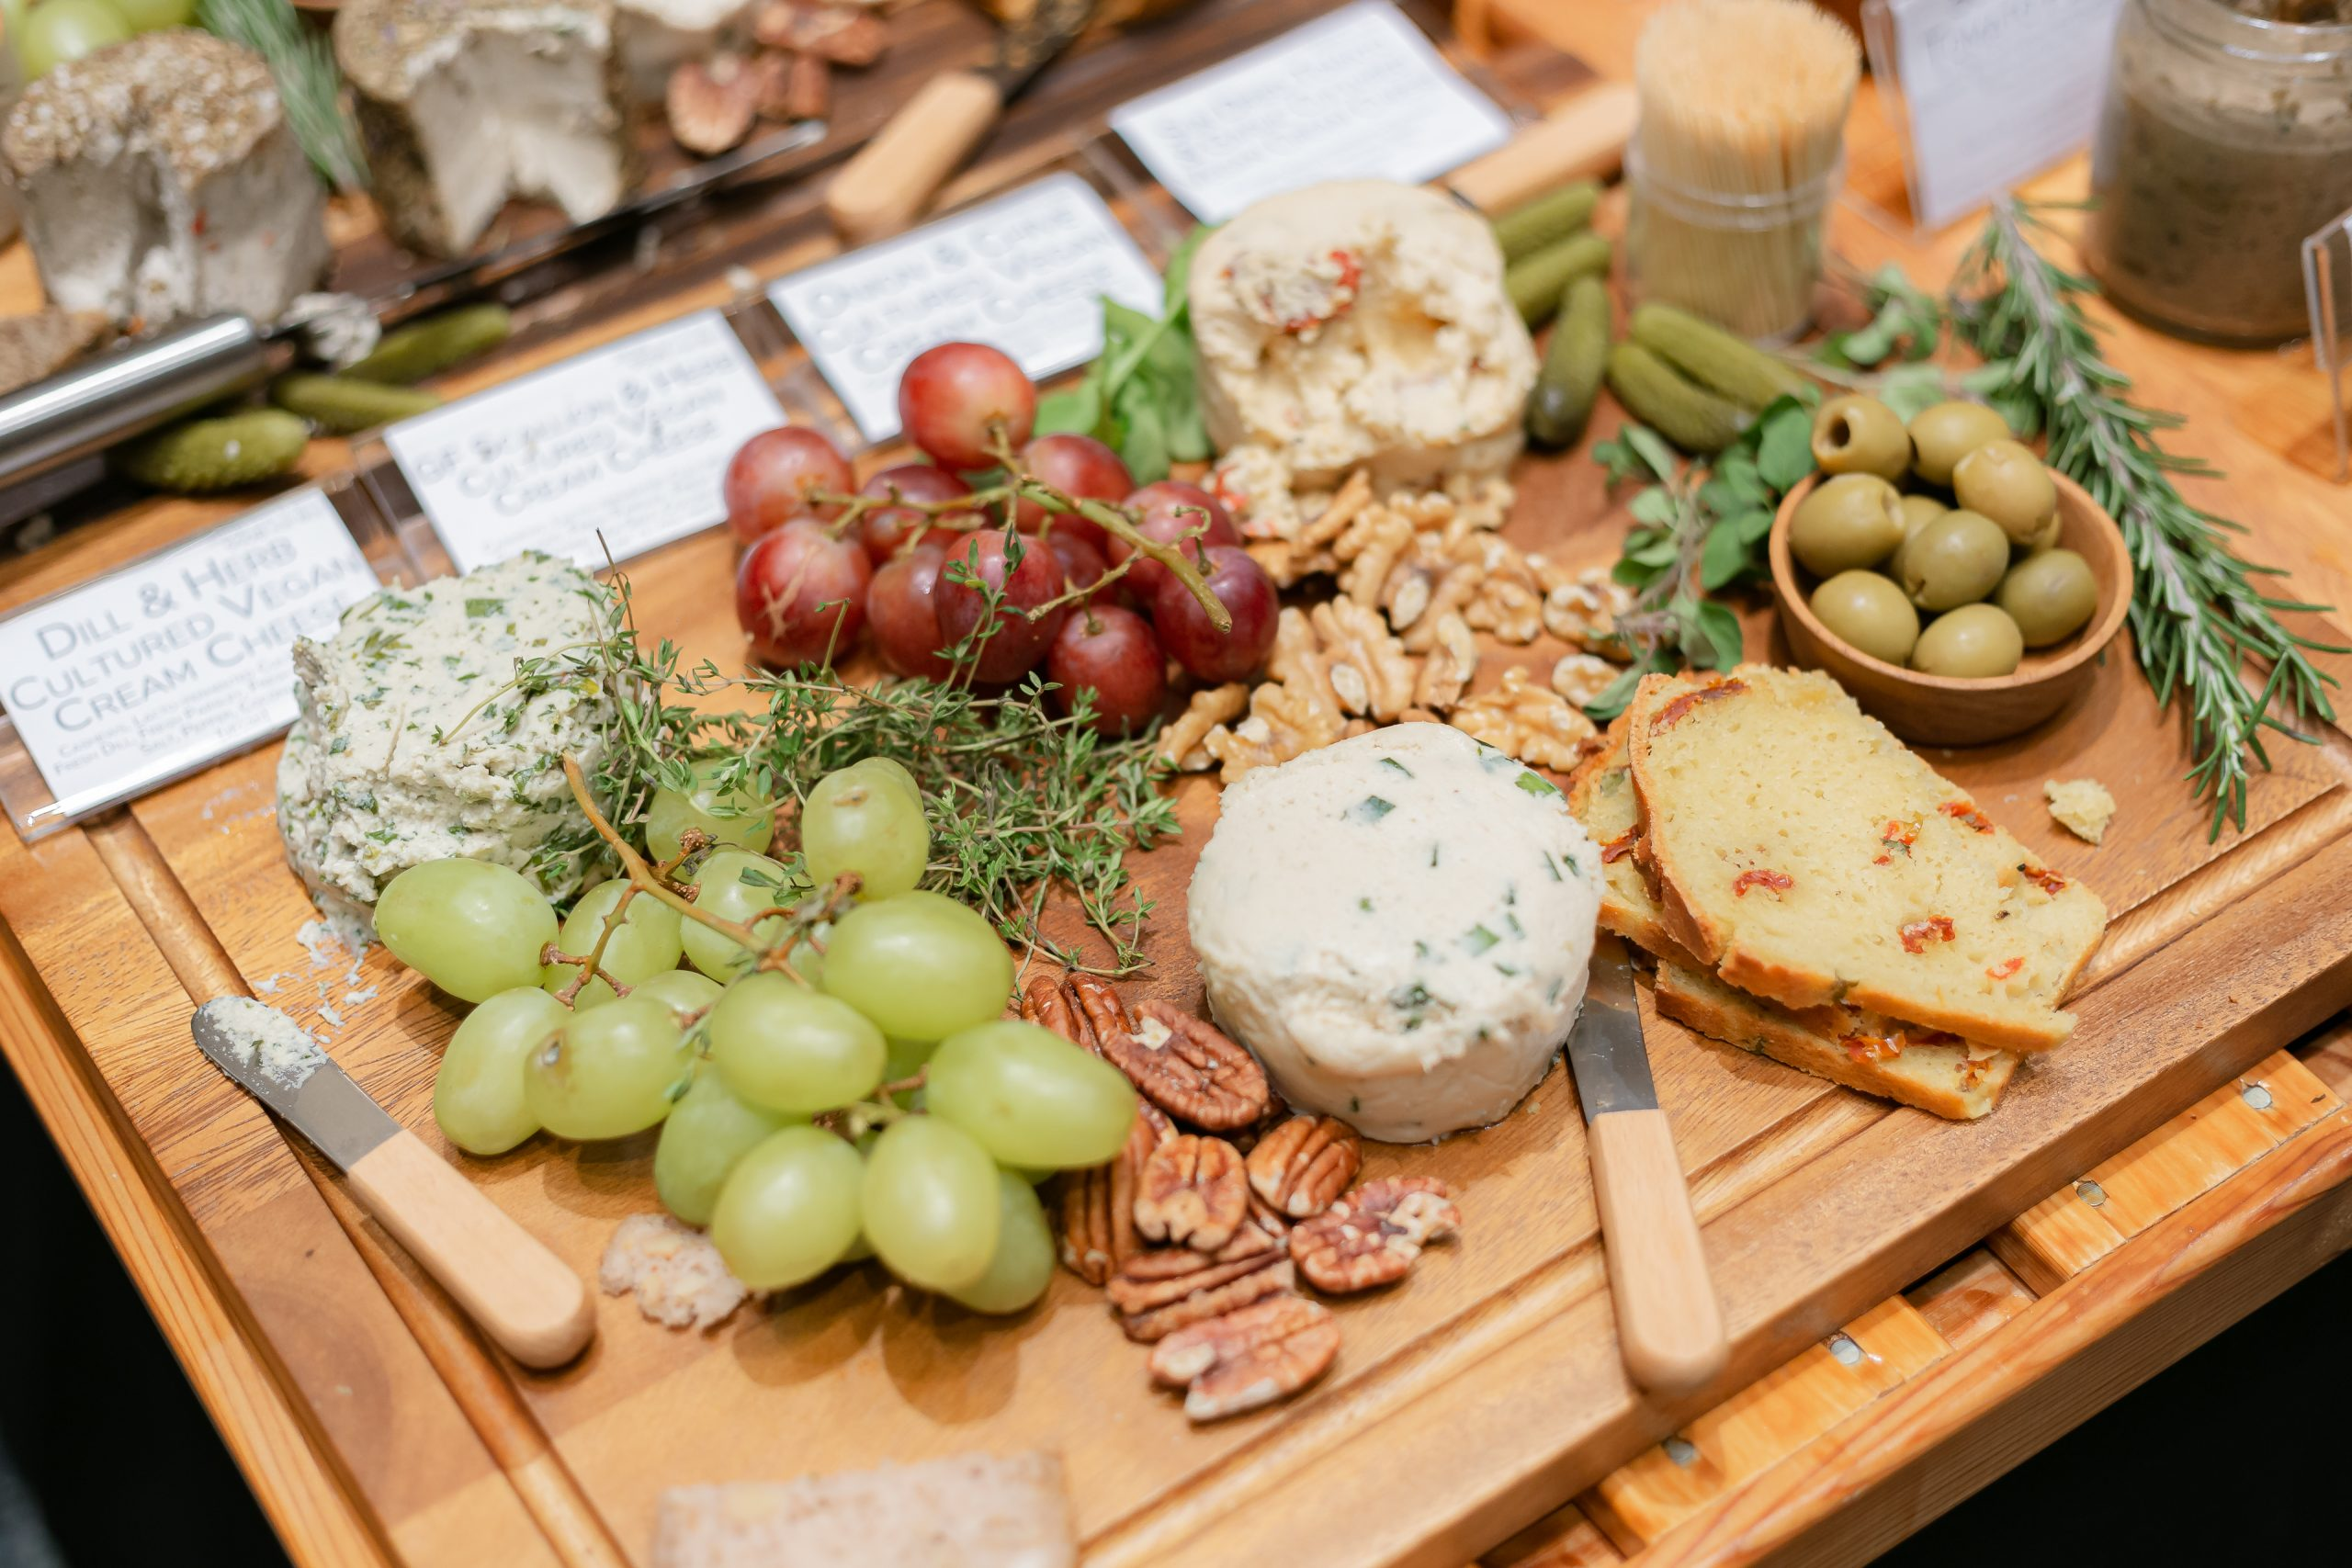 Cheese, nuts, grapes and bread! everyone's favorite!